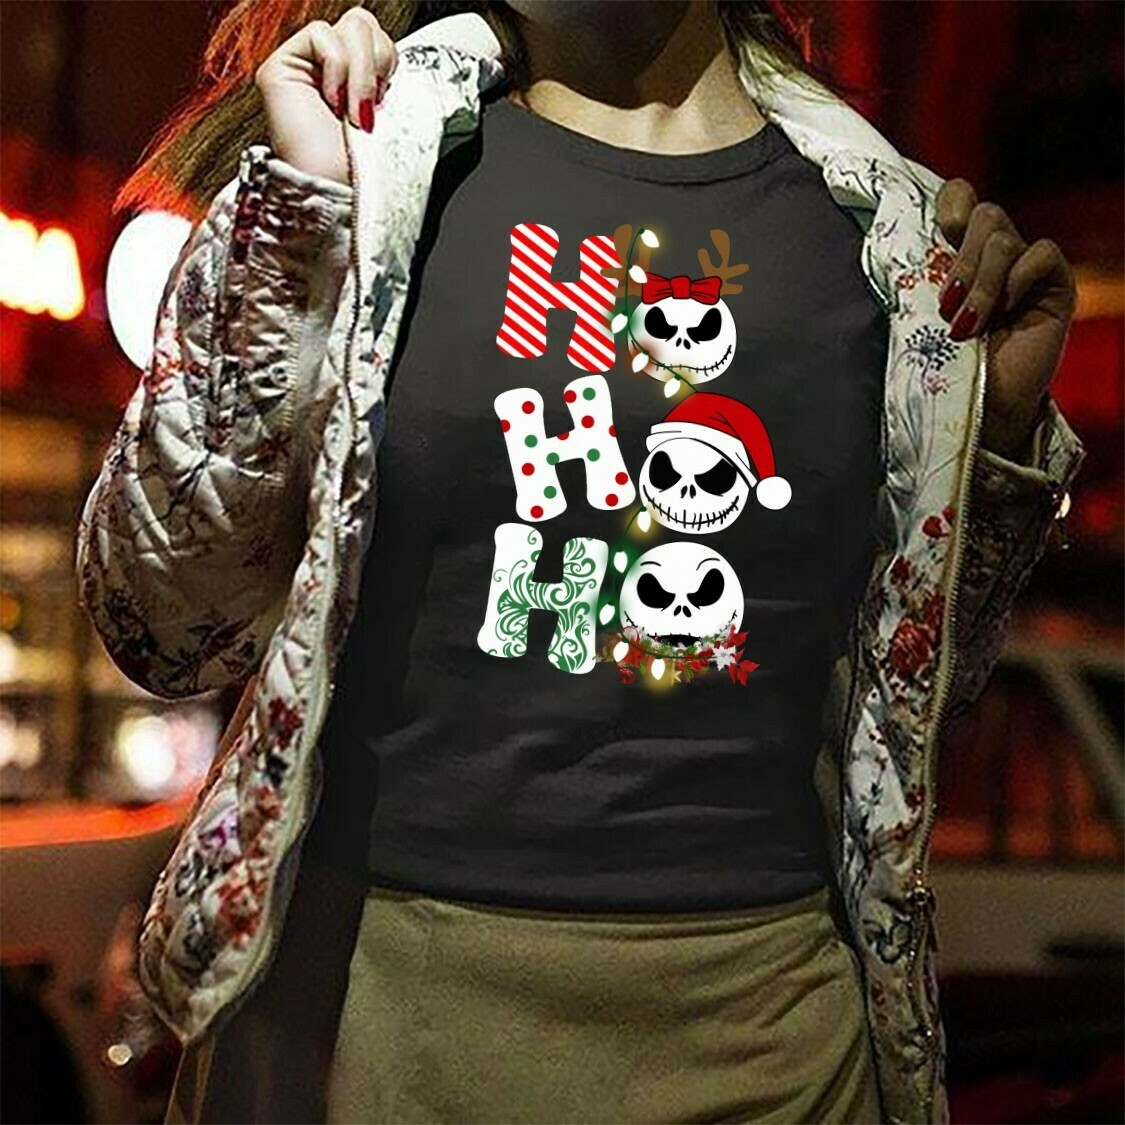 Jack Skellington Merry Christmas 2019 HoHoHo Hocus Pocus The Nightmare Before Christmas Halloween Disney Villain Mickey Not So Scary T-Shirt Long Sleeve Sweatshirt Hoodie Jolly Family Gifts